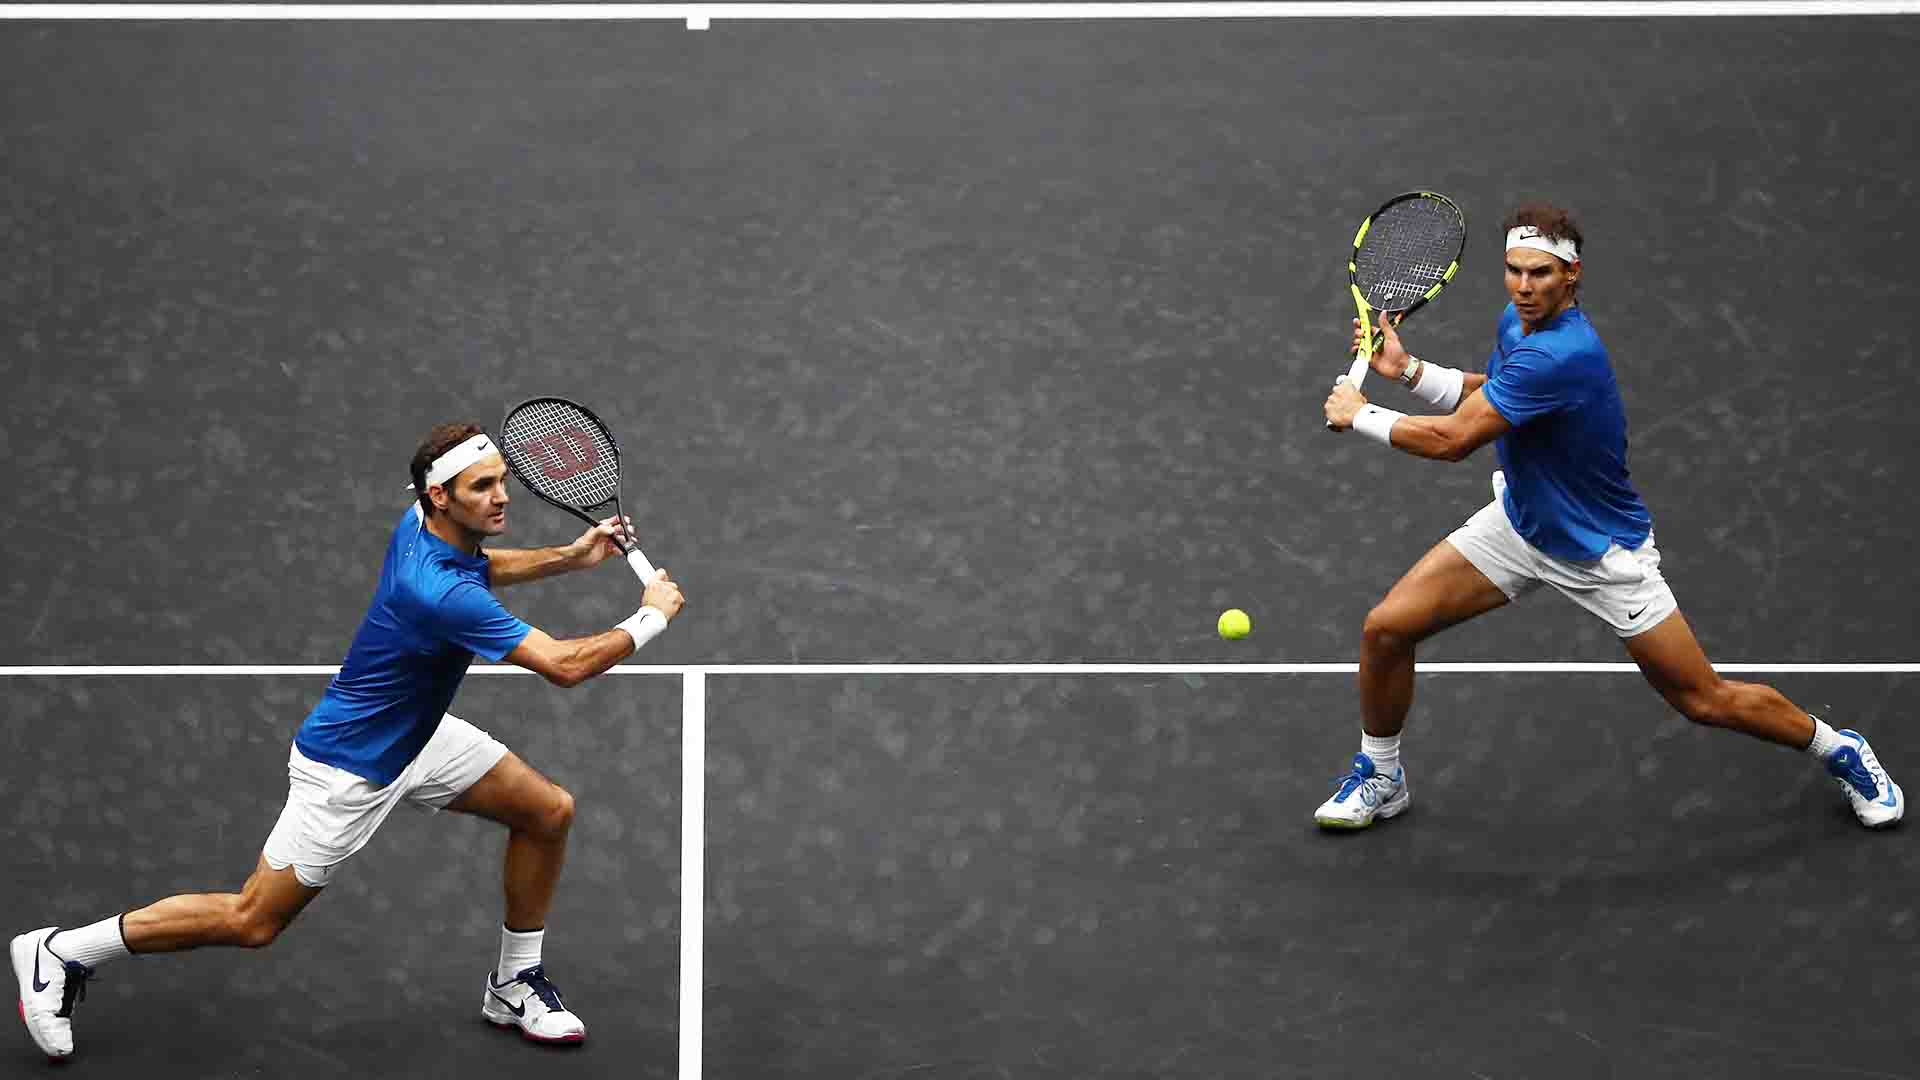 <a href='/en/players/roger-federer/f324/overview'>Roger Federer</a> and <a href='/en/players/rafael-nadal/n409/overview'>Rafael Nadal</a> played their first doubles match as a team at the 2017 <a href='/en/tournaments/laver-cup/9210/overview'>Laver Cup</a> in Prague.